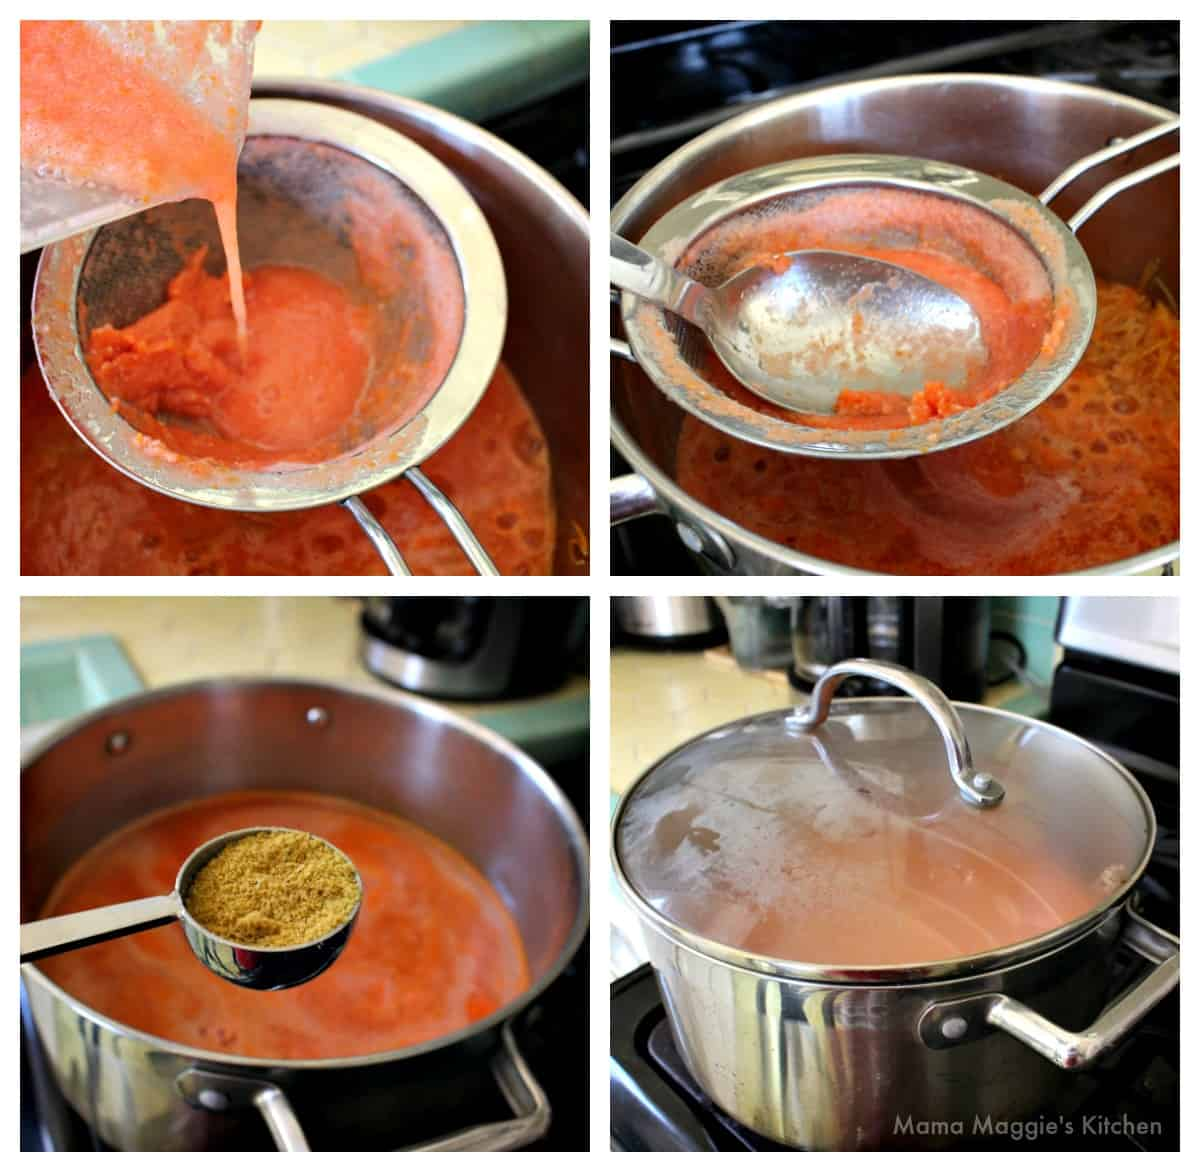 A collage showing how to add the tomato sauce to the stock pot.